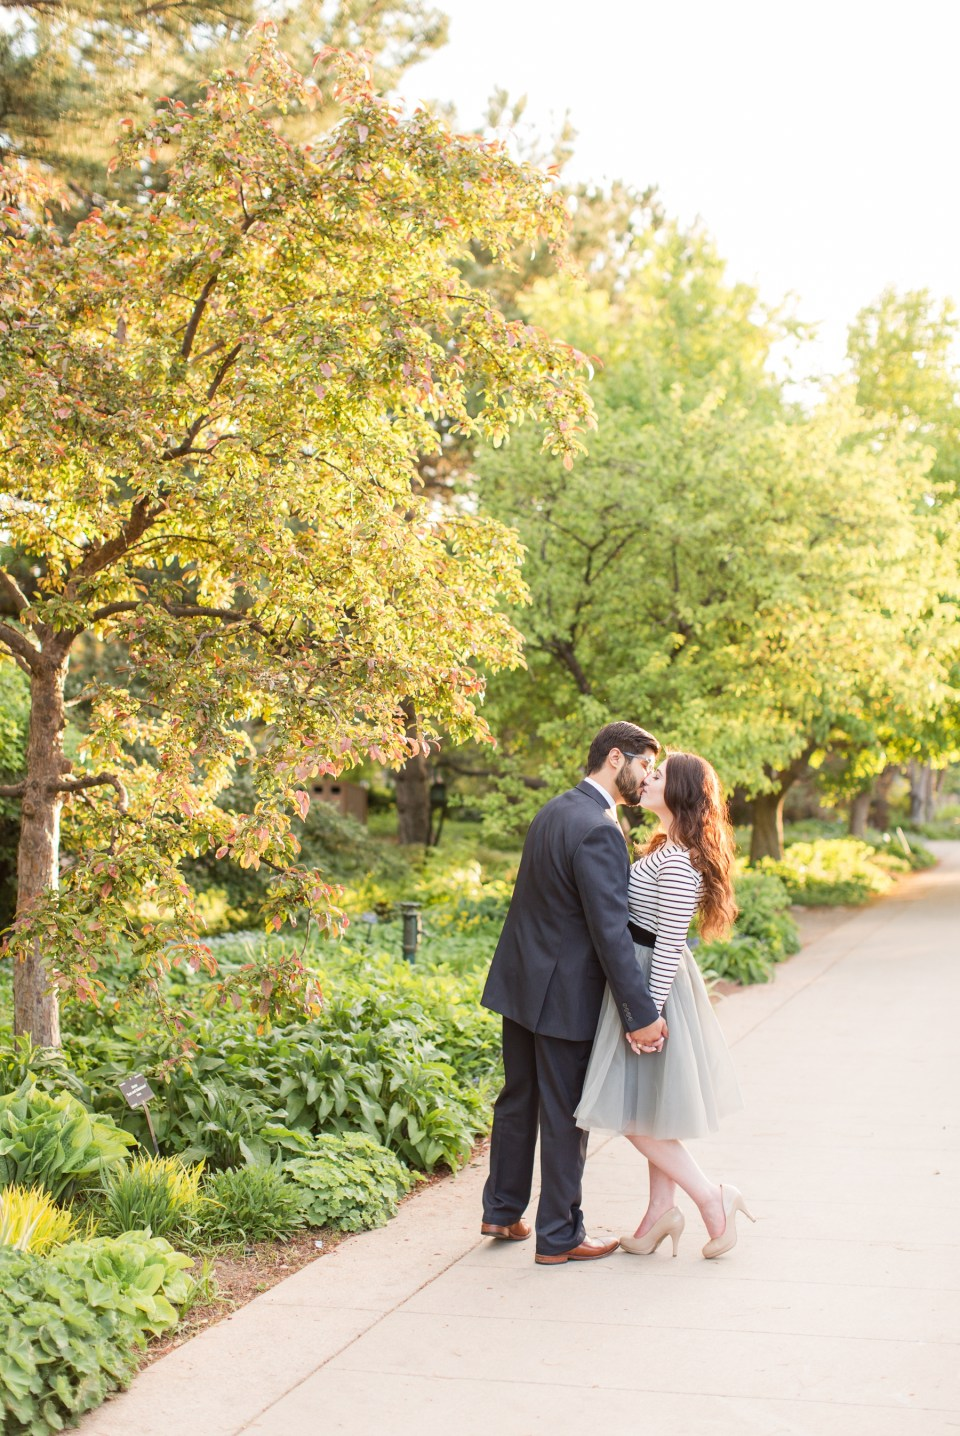 Girl in a grey tule skirt and stripped top for an engagement session at the Denver Botanic garden. Couple kissing on a pathway at the Denver Botanic Gardens